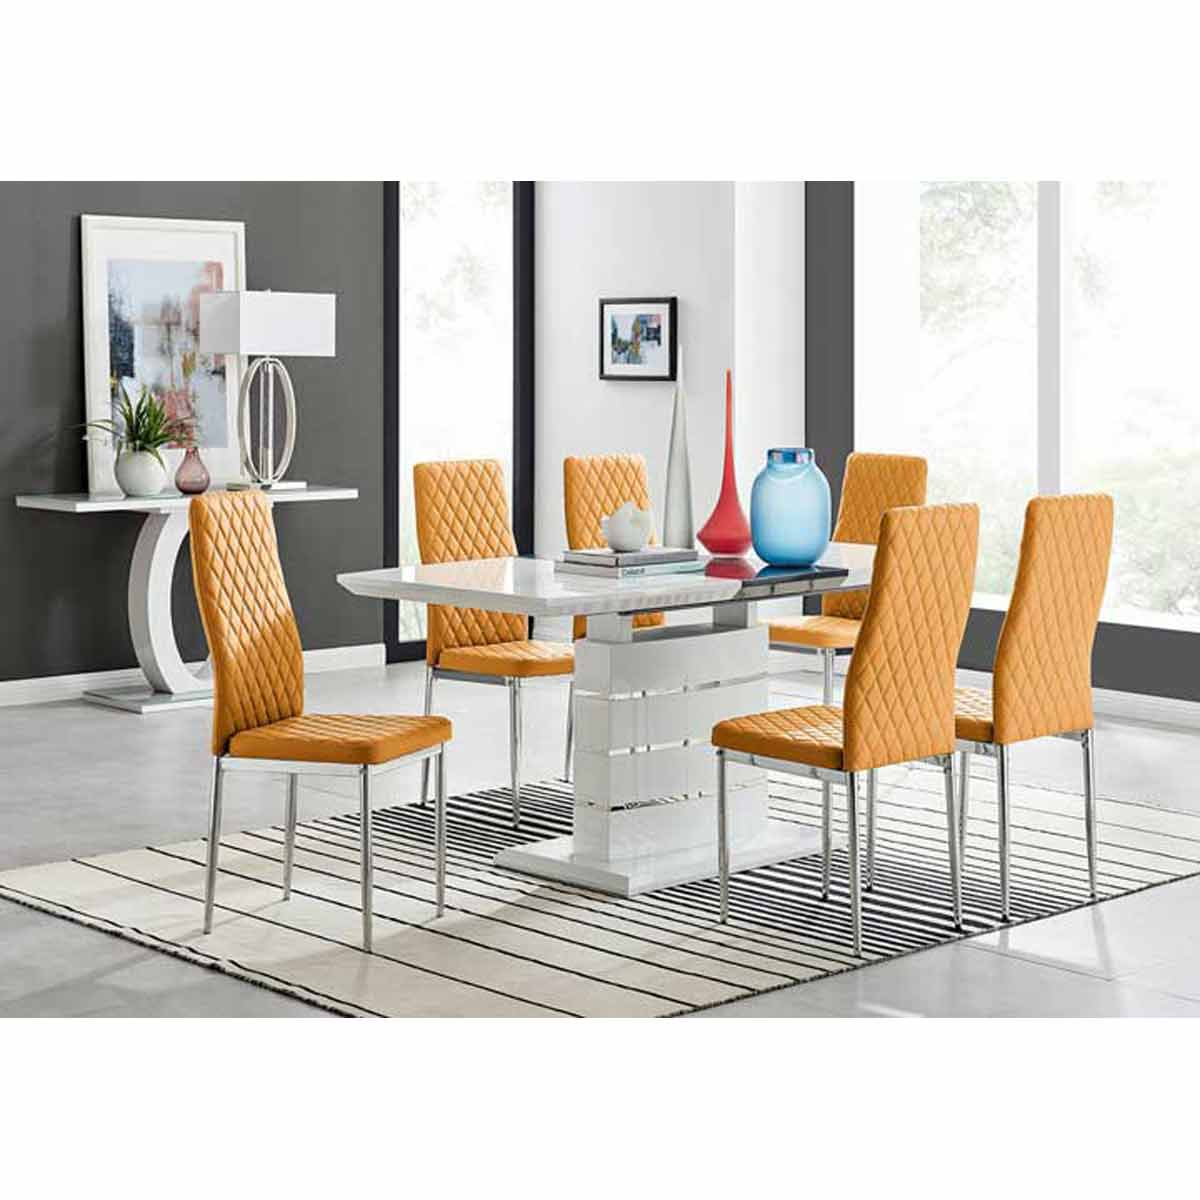 Furniture Box Renato 120cm High Gloss Extending Dining Table and 6 Mustard Milan Chairs